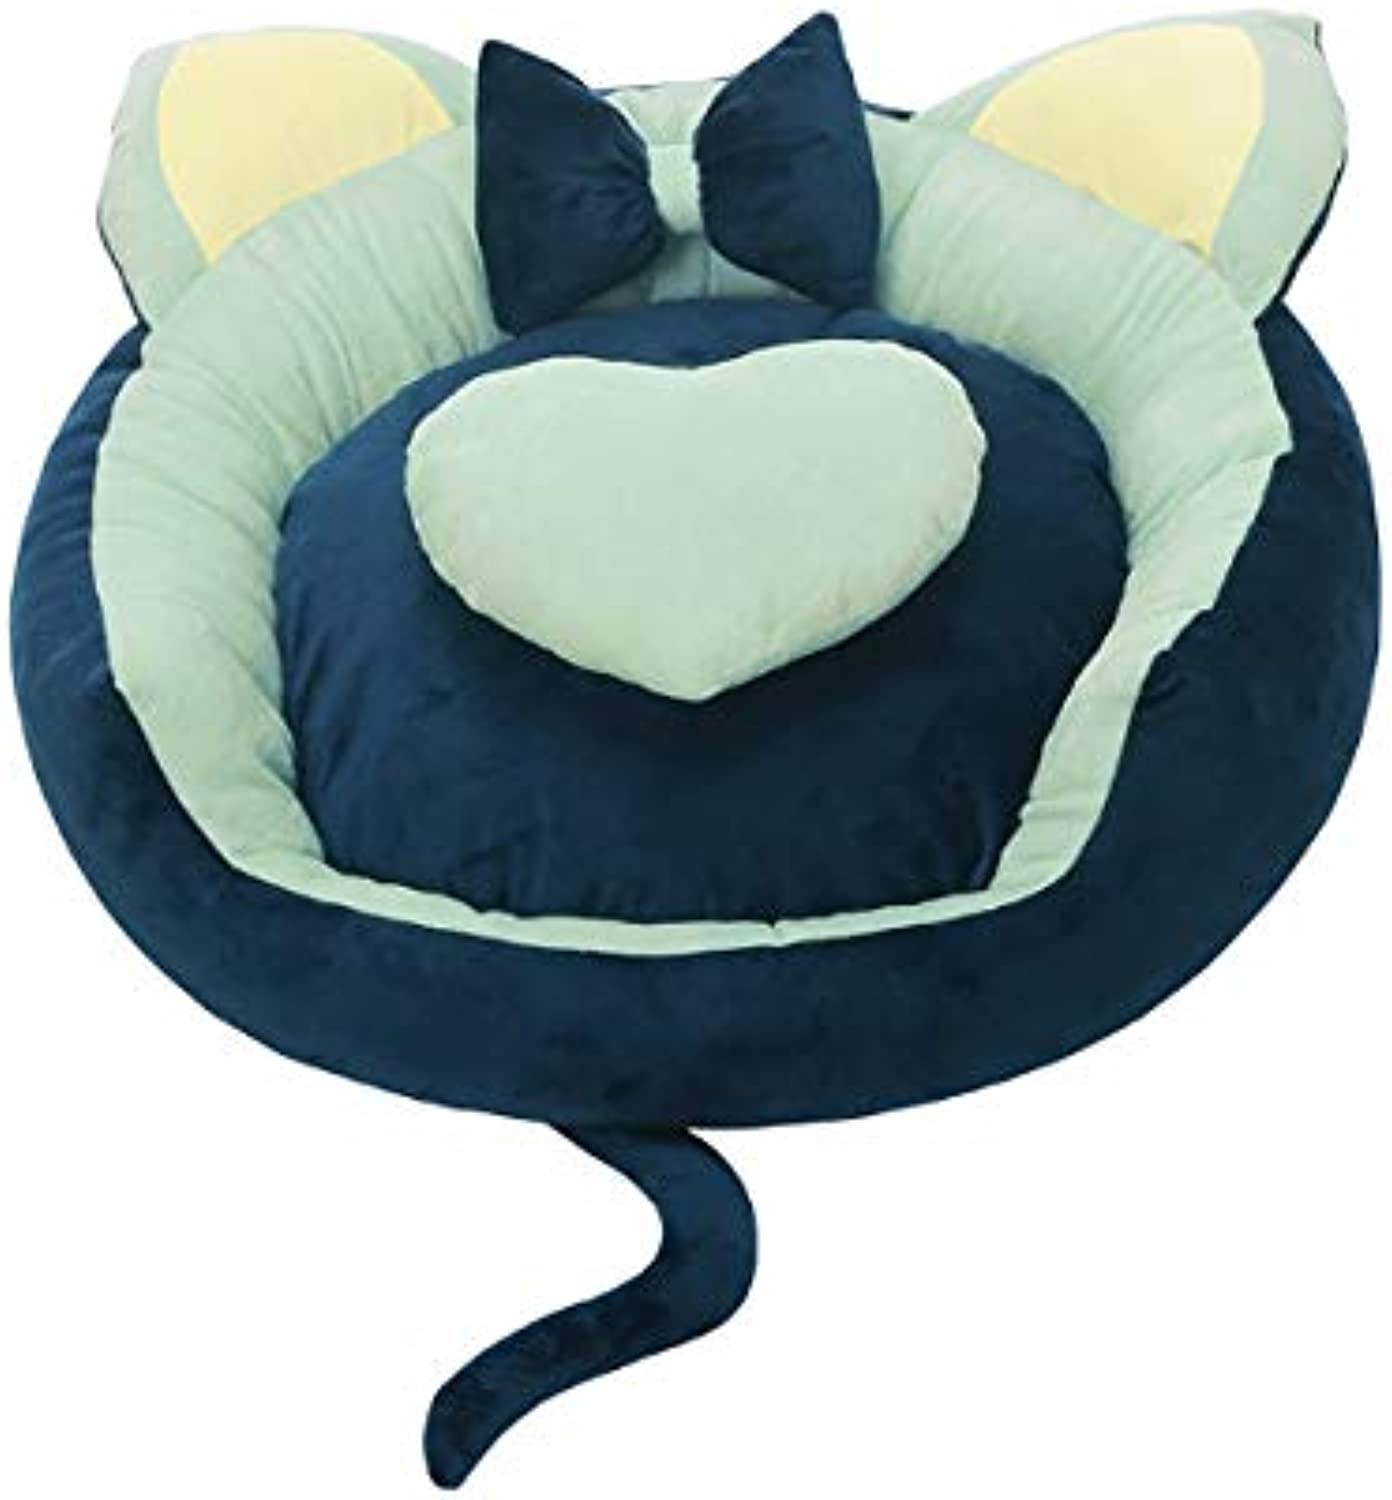 GBJ2 Pet Cat Small Dog Basket Soft Bed Met House 1pcs pack (XL Diameter78cm 30.7in, bluee)